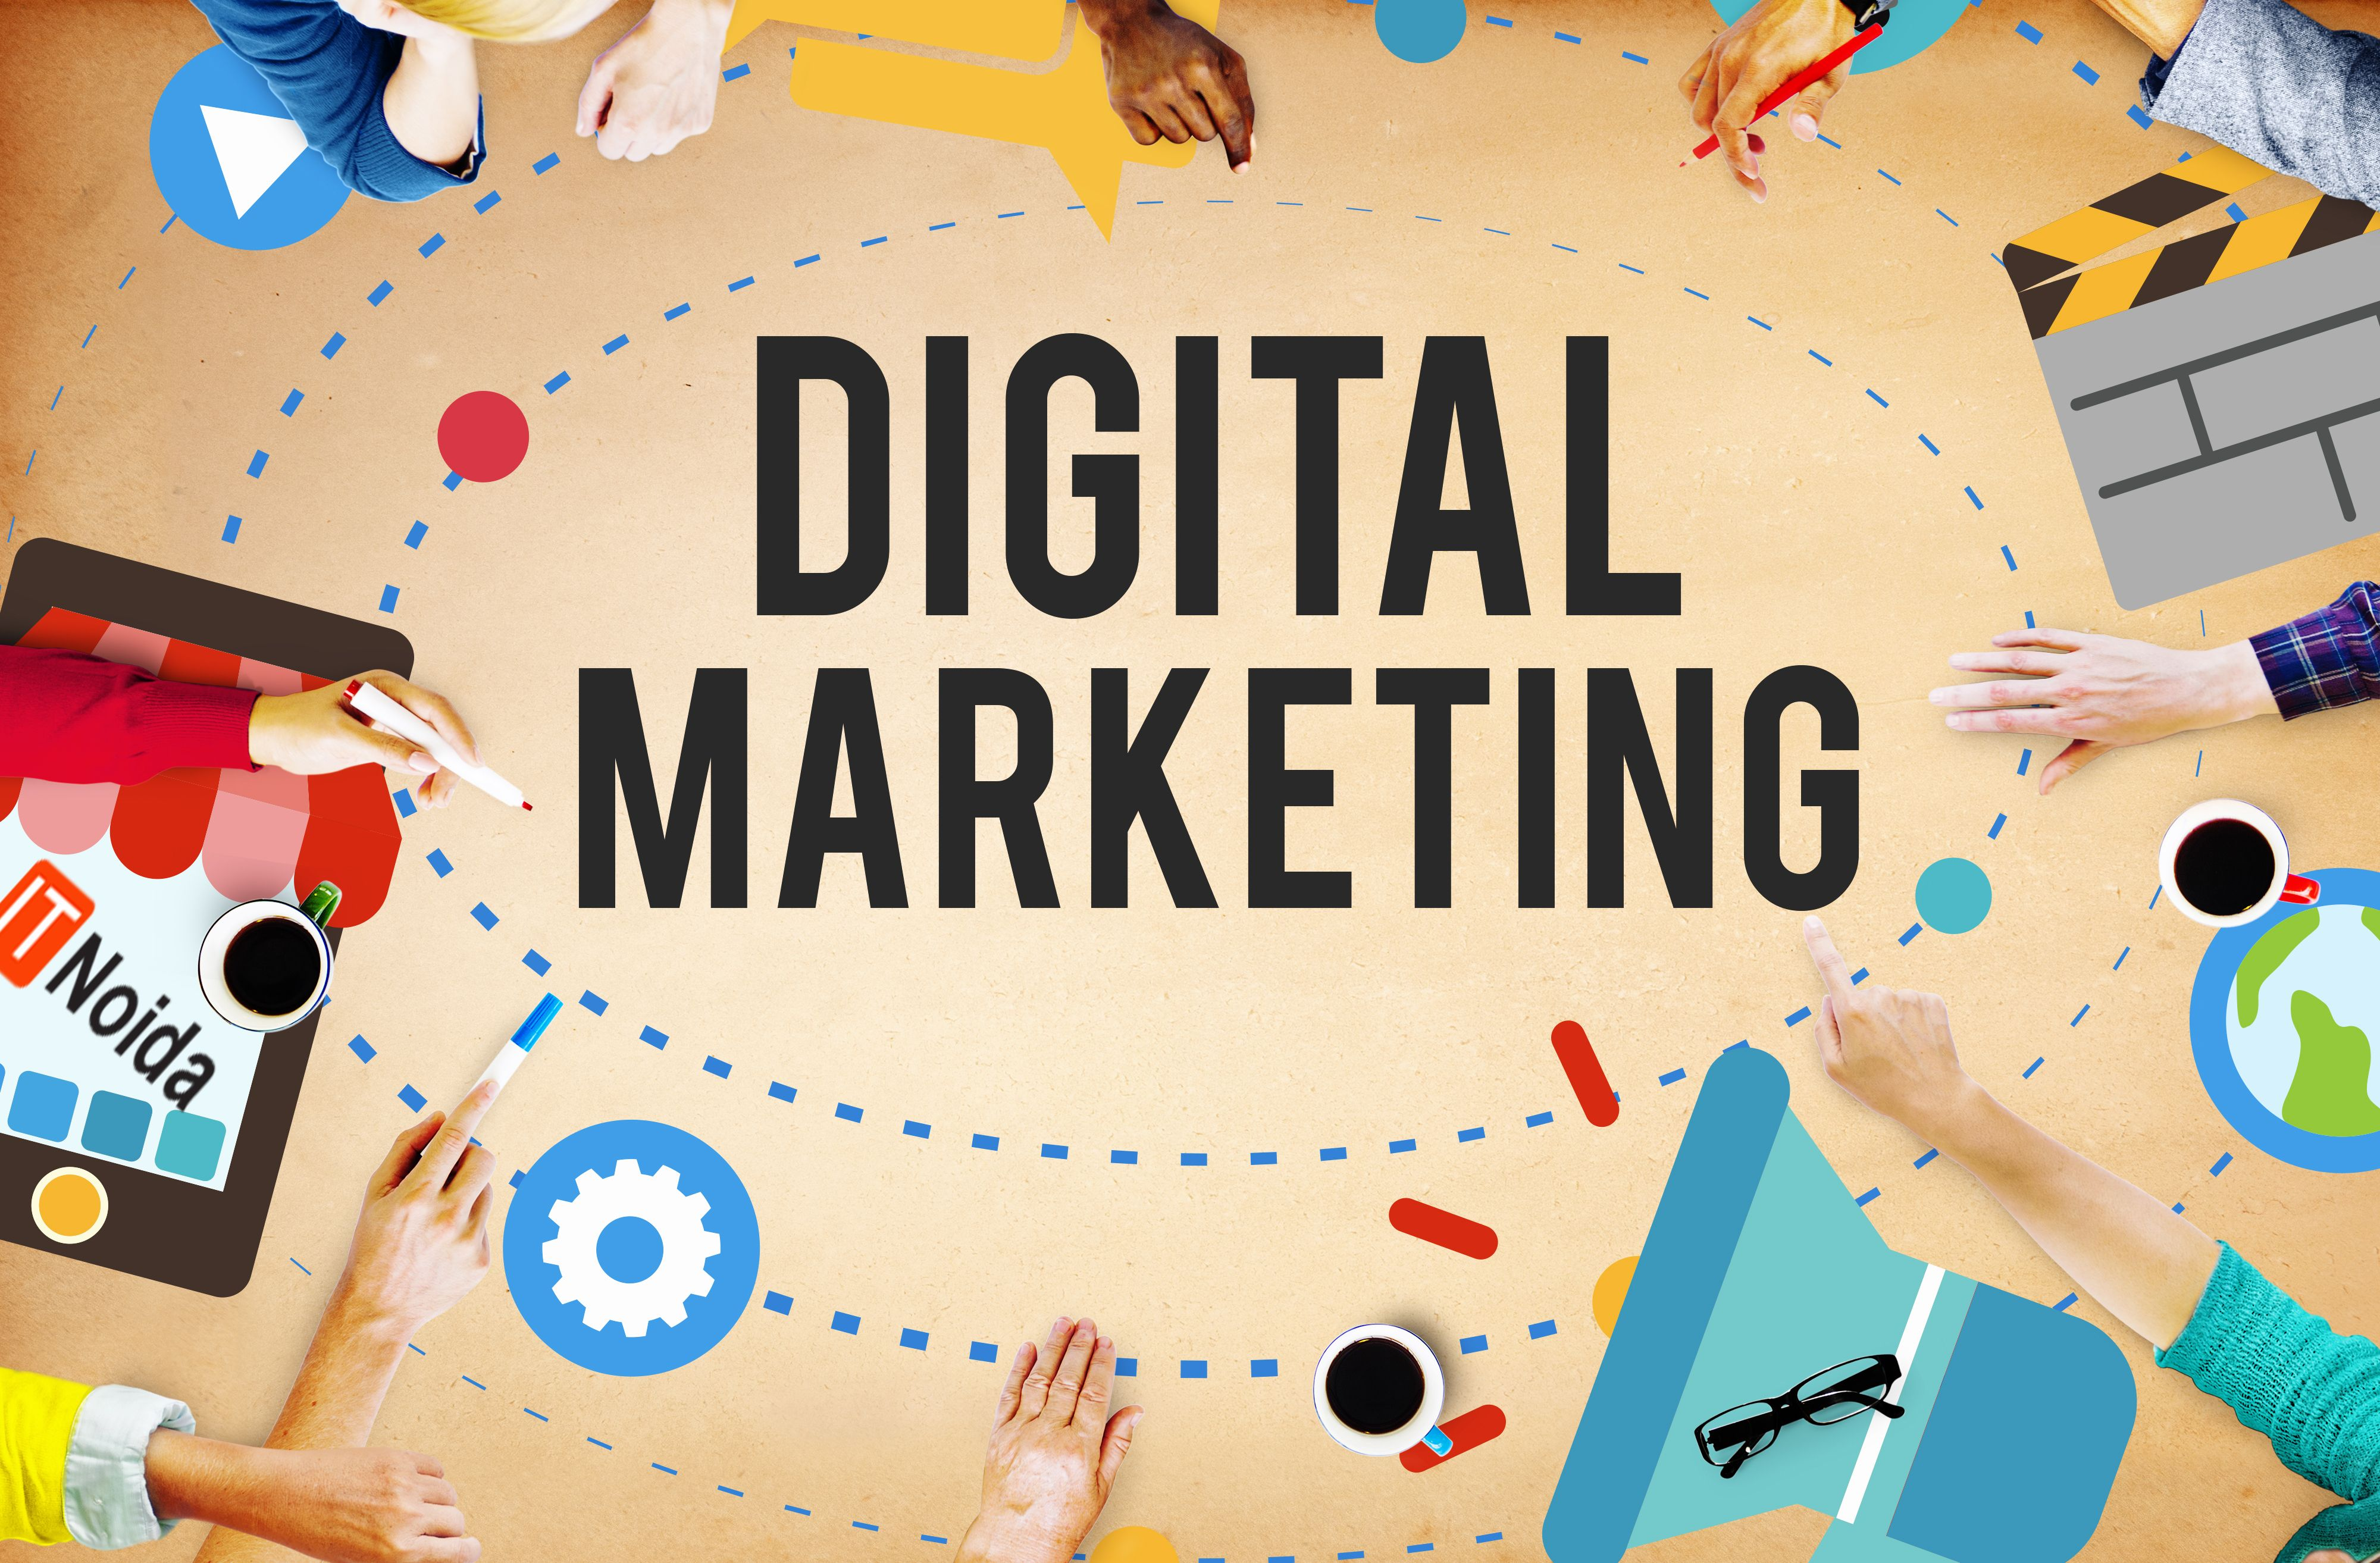 IT+Noida+India+is+a+digital+marketing+agency+specializing+in+SEO+/+Search+Engine+Optimization,+and+Social+Media+Marketing